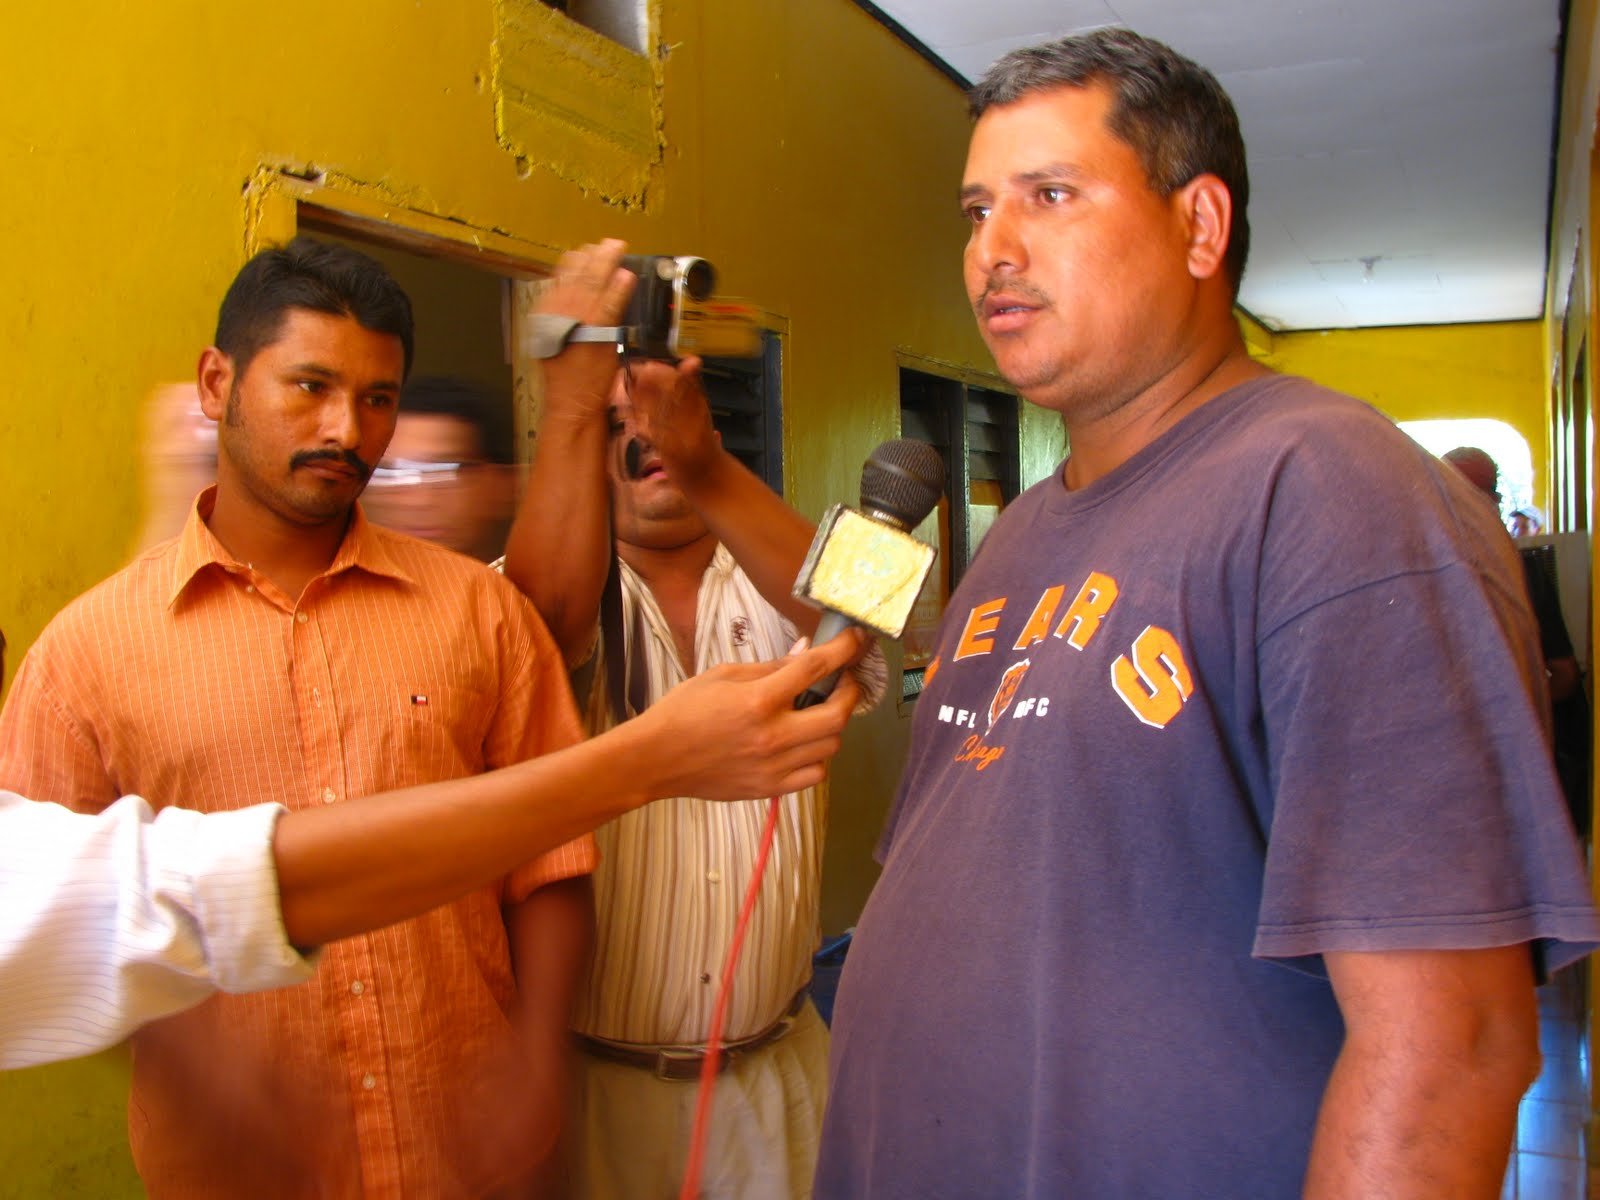 Left to right: two detained campesinos, Osman Alexis Ulloa Flores & Mario Rene Ayala being interviewed by the local press at the police station in Tocoa, Colón, Honduras .